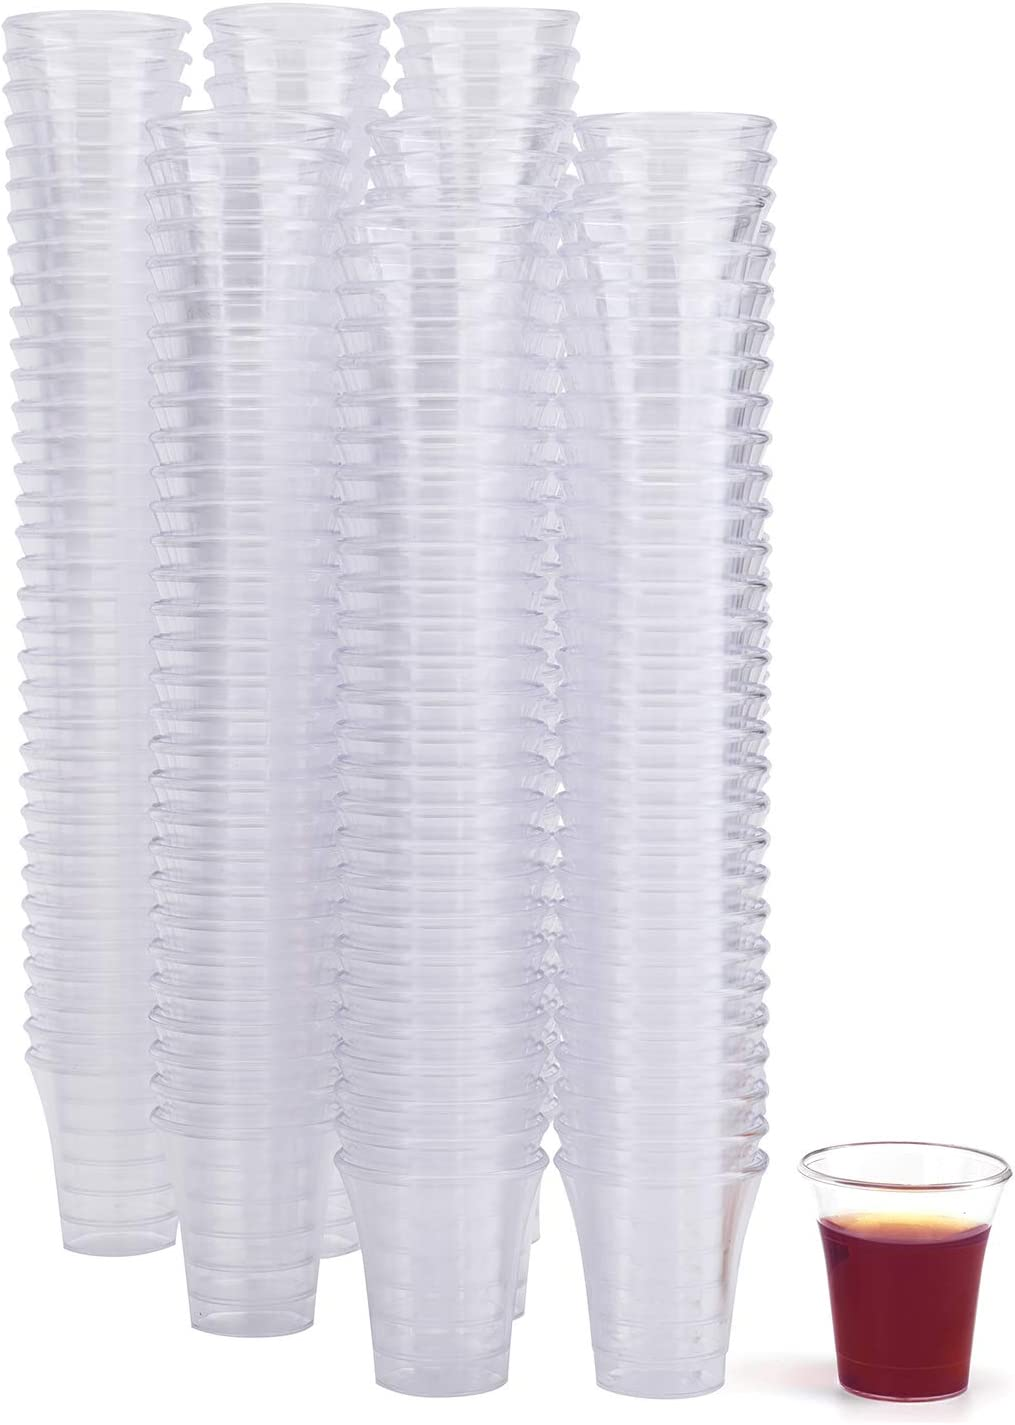 Bekith 1000 Pack Communion Cups, Plastic Disposable cup Fits Standard Holy Communion Trays, 0.5 Ounce, Clear